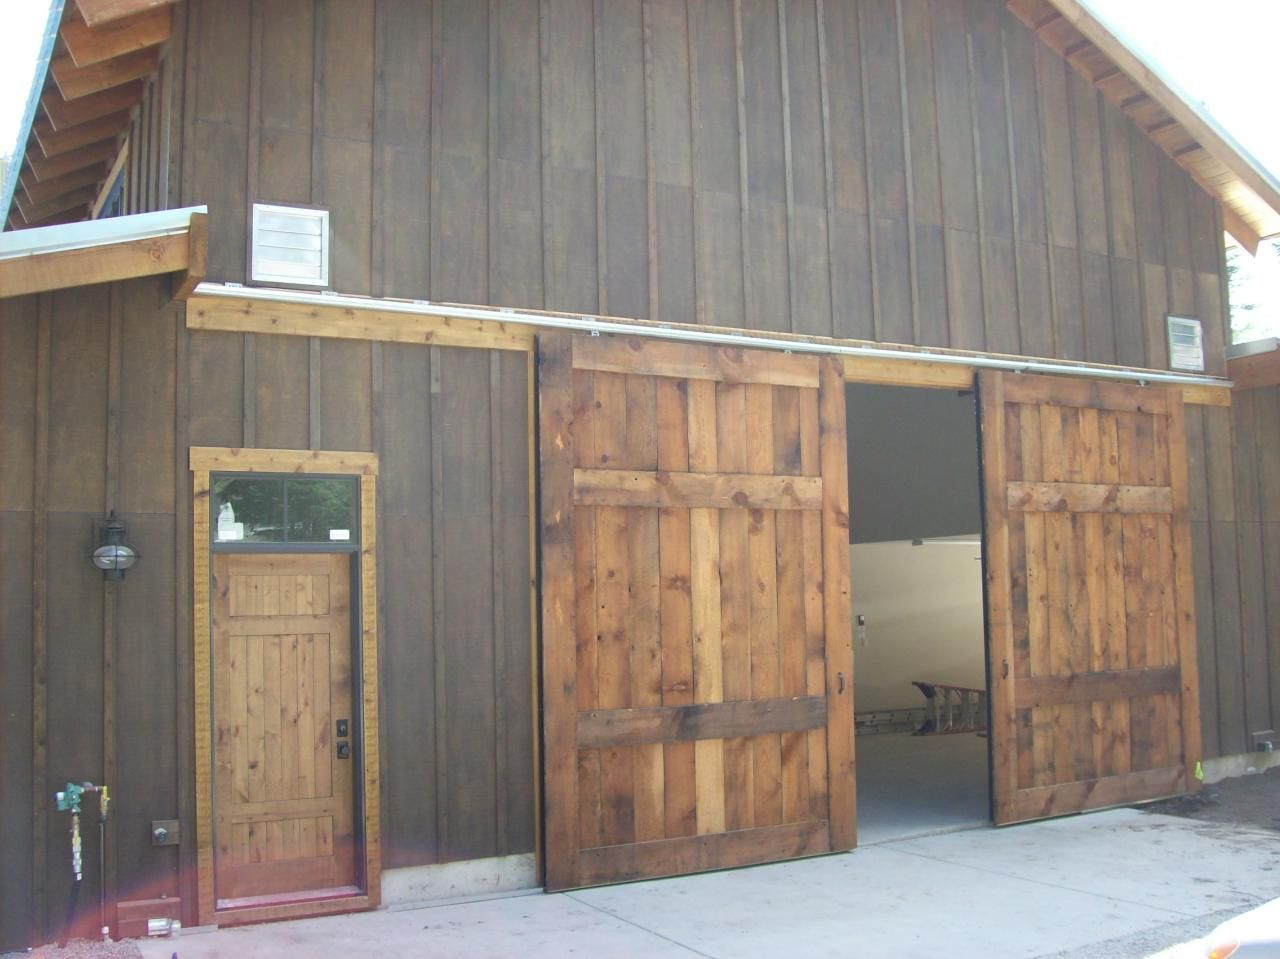 1st Impressions More Than Doors - Lucky 4 Ranch & 1st Impressions More Than Doors - Lucky 4 Ranch   Rustic knotty ...